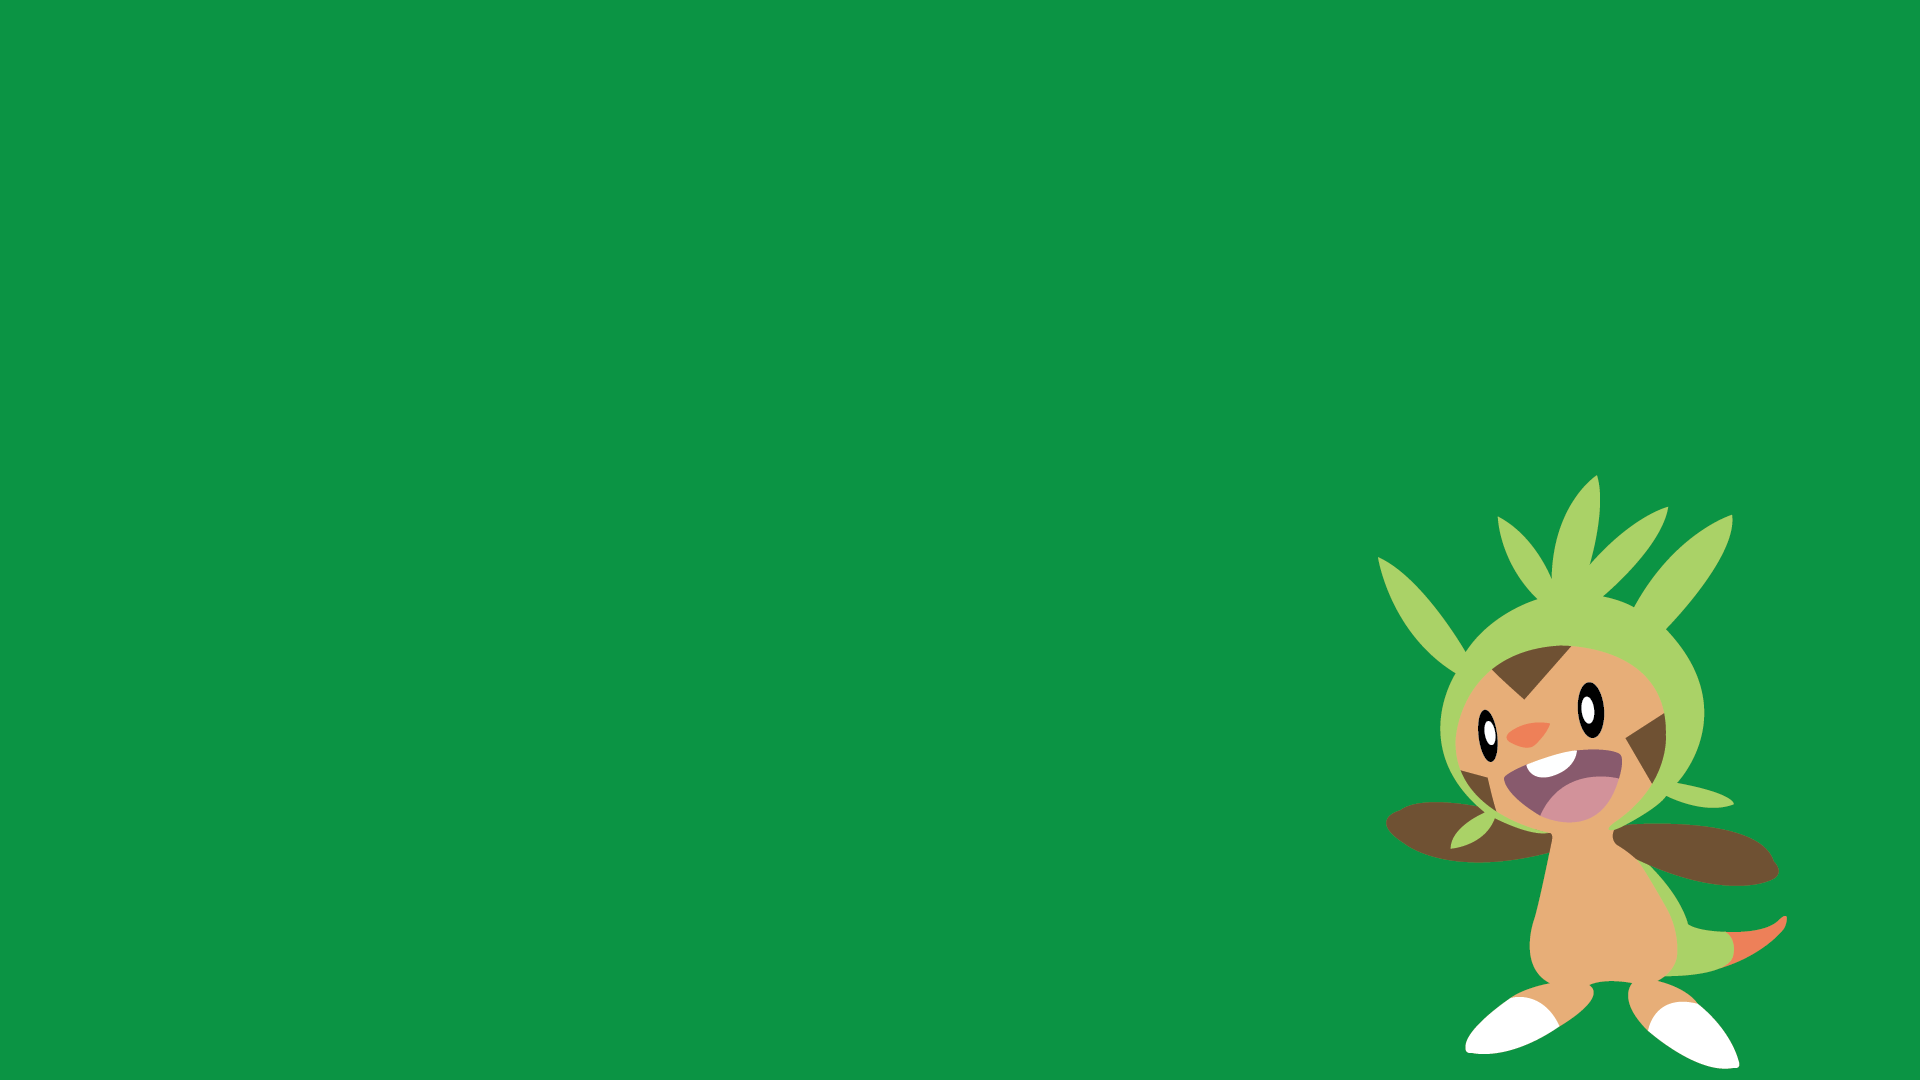 Chespin Wallpaper : pokemon